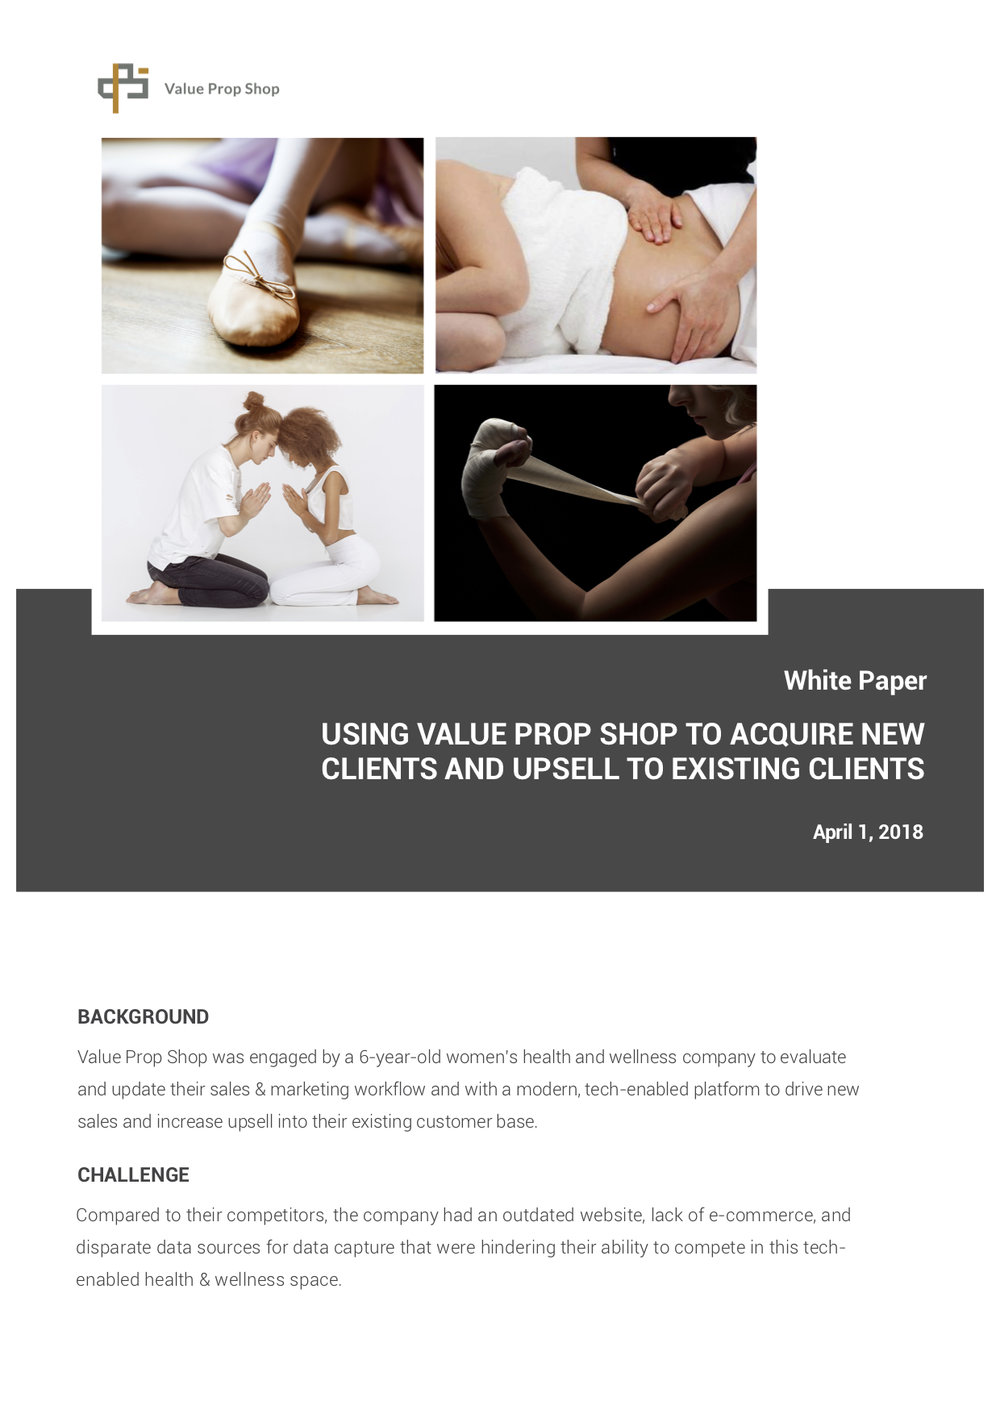 Value Prop Shop White Paper Sales